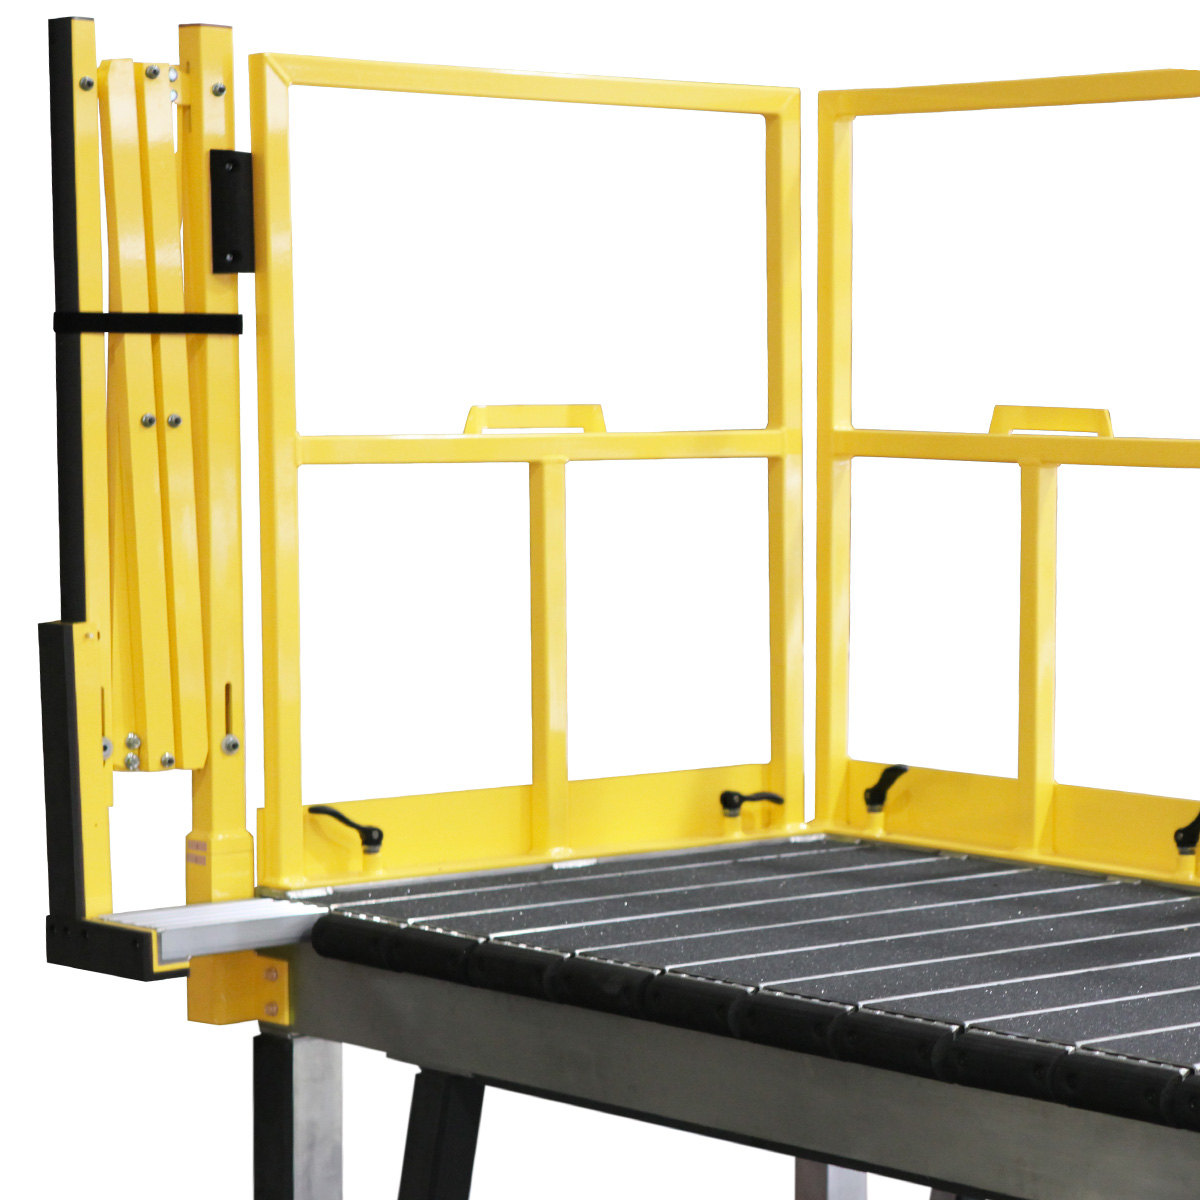 EC725 | H225M Helicopter – Daily Maintenance Stands OSHA compliant, portable aluminum work platform with adjustable guardrails and accordion extension guardrails that automatically extend with cantilever deck extensions for 100% fall prevention.